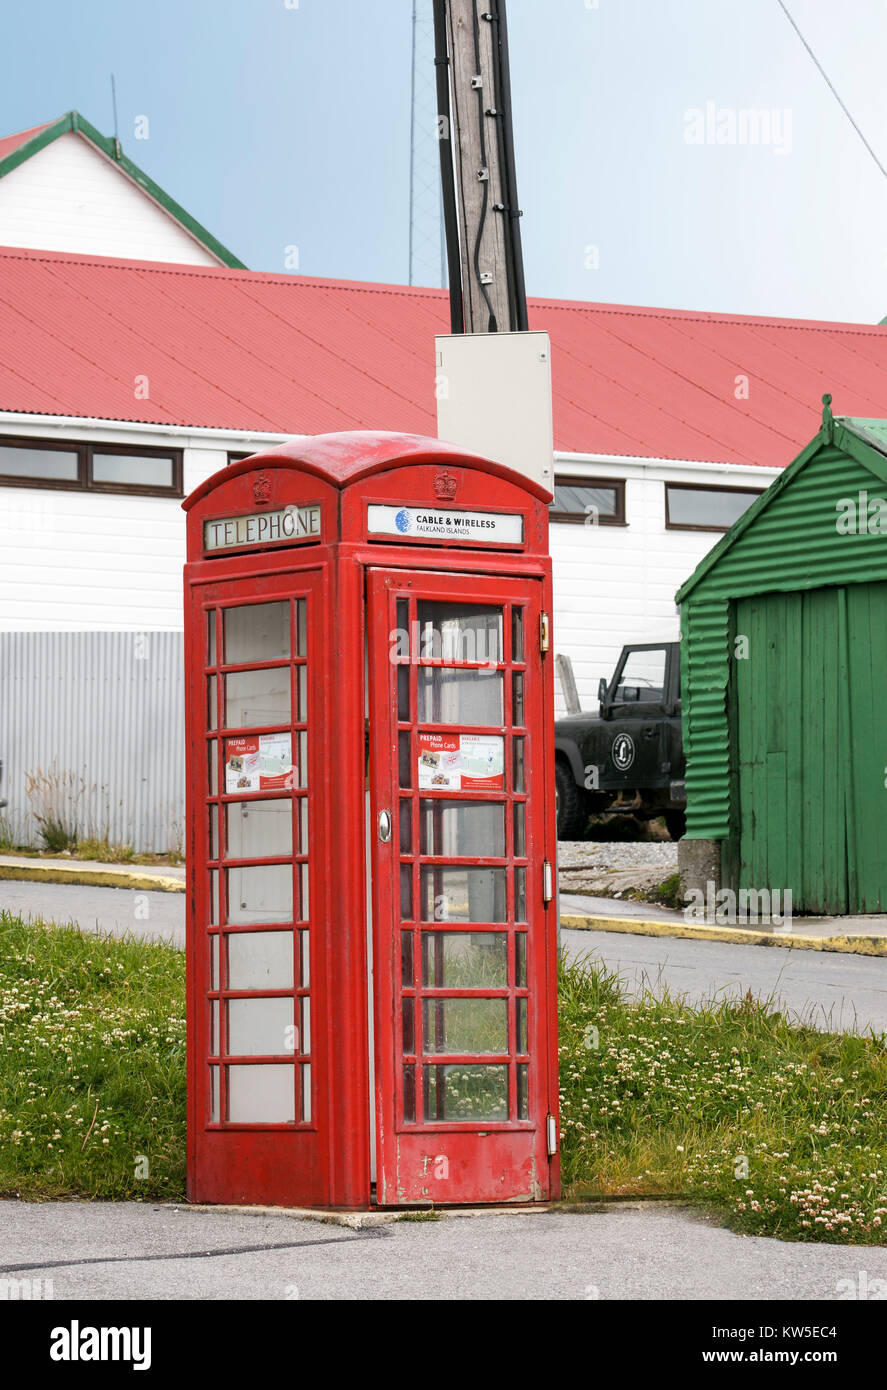 A typical older style red British Phone Booth. Phonebooth,  Port Stanley, Falkland Islands. - Stock Image